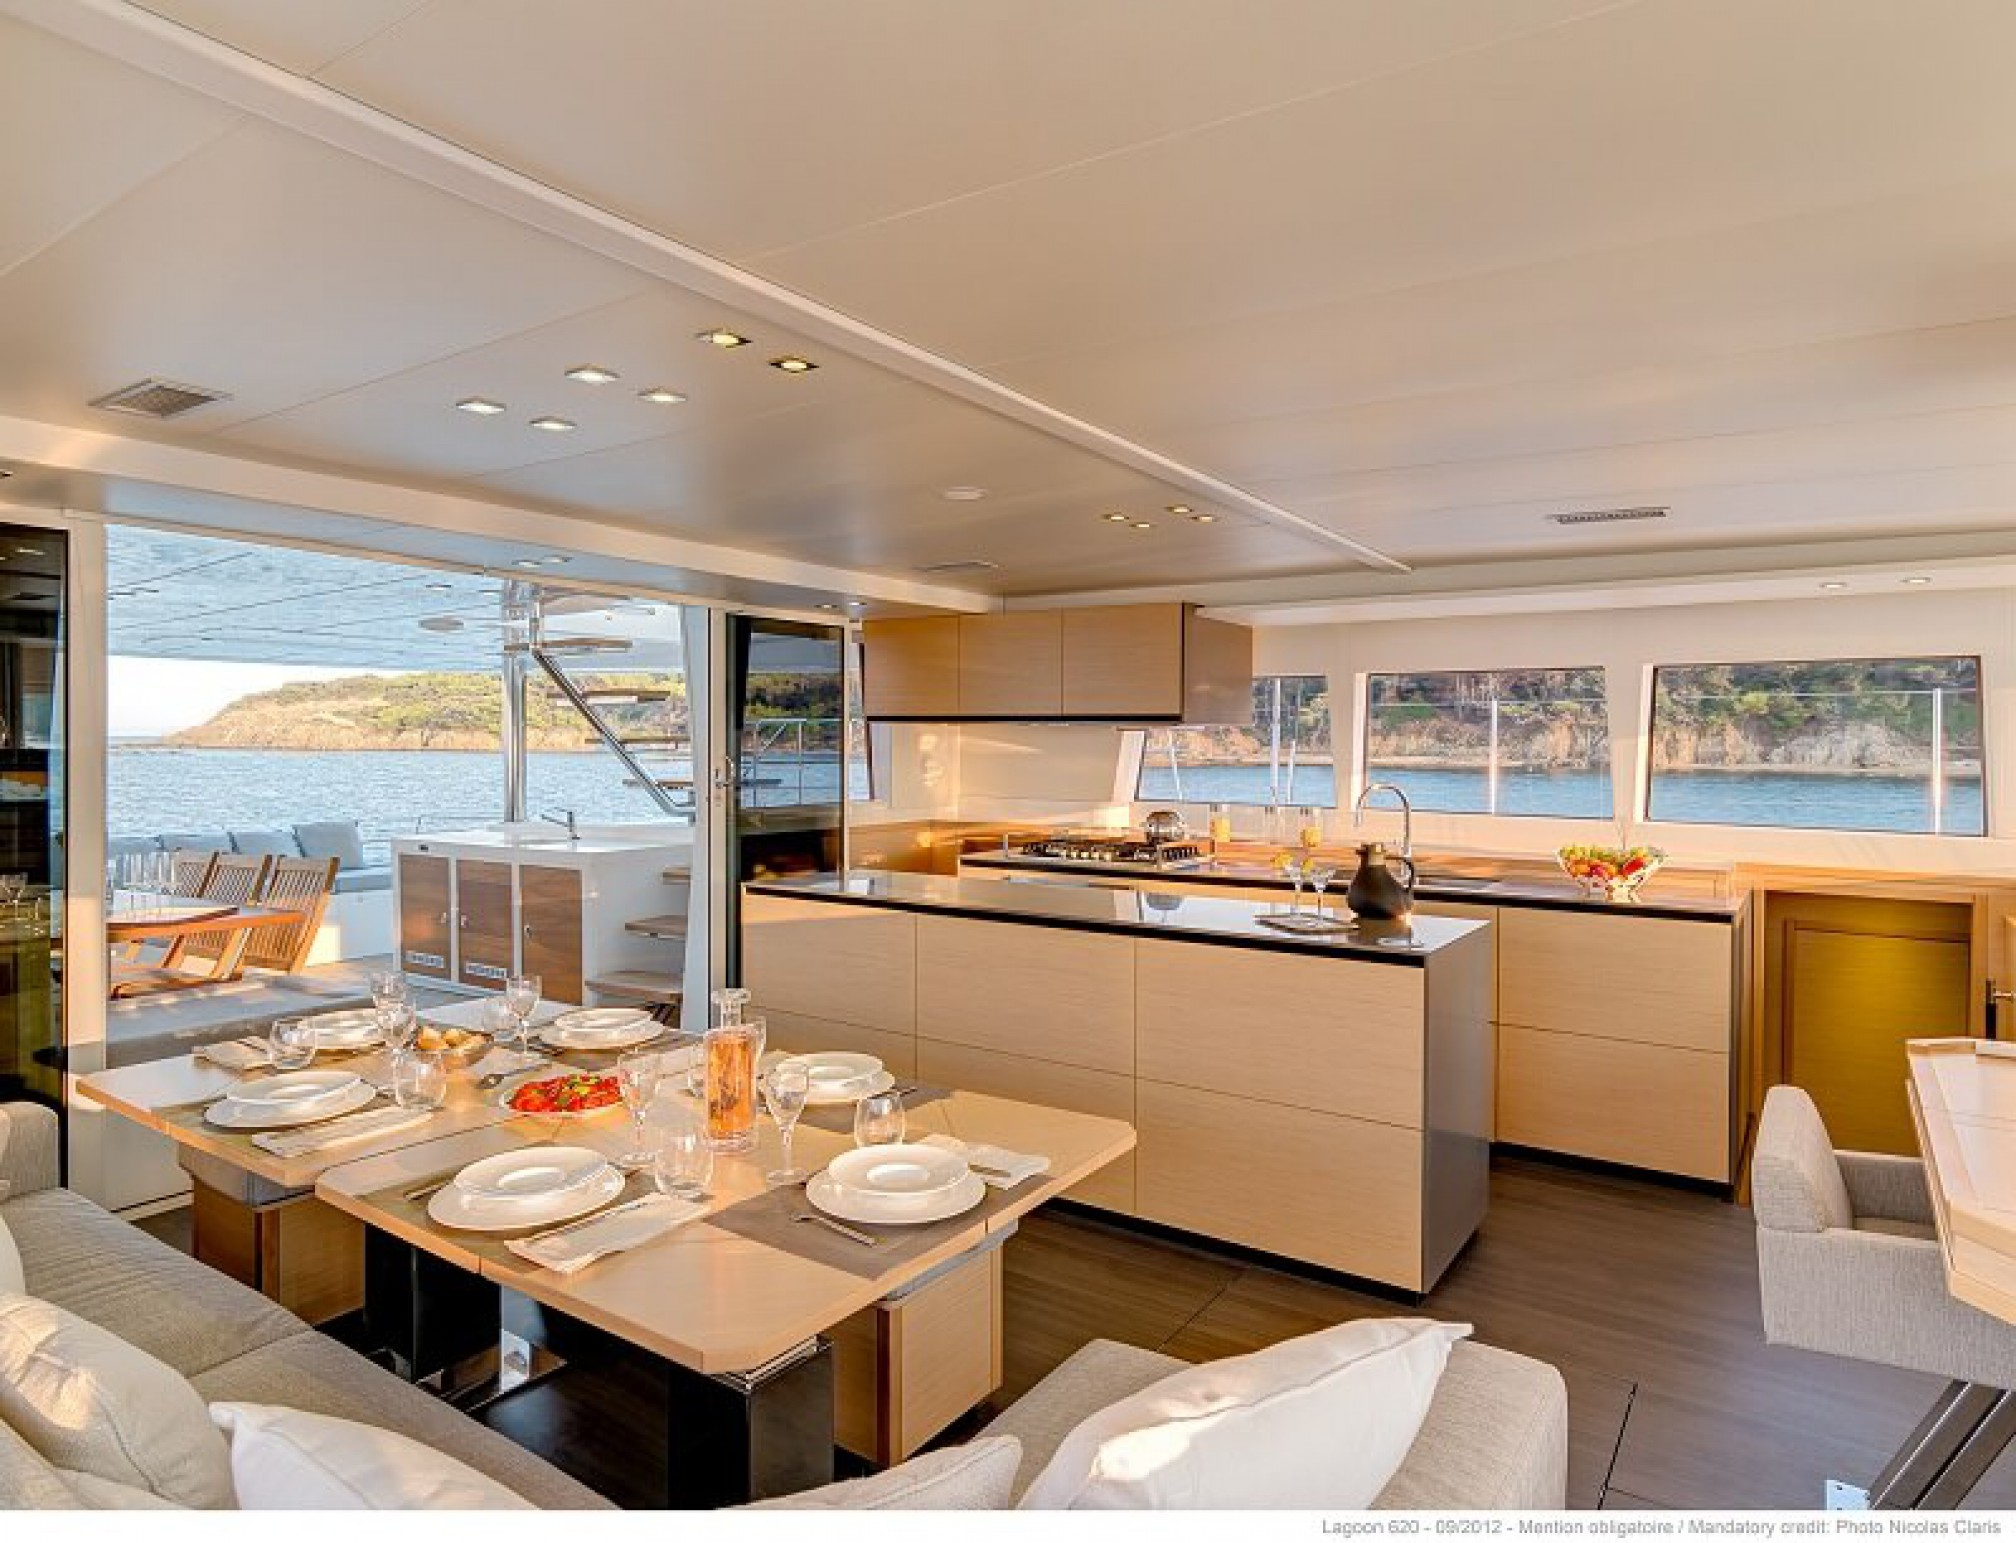 Lagoon 620 catamaran charter salon